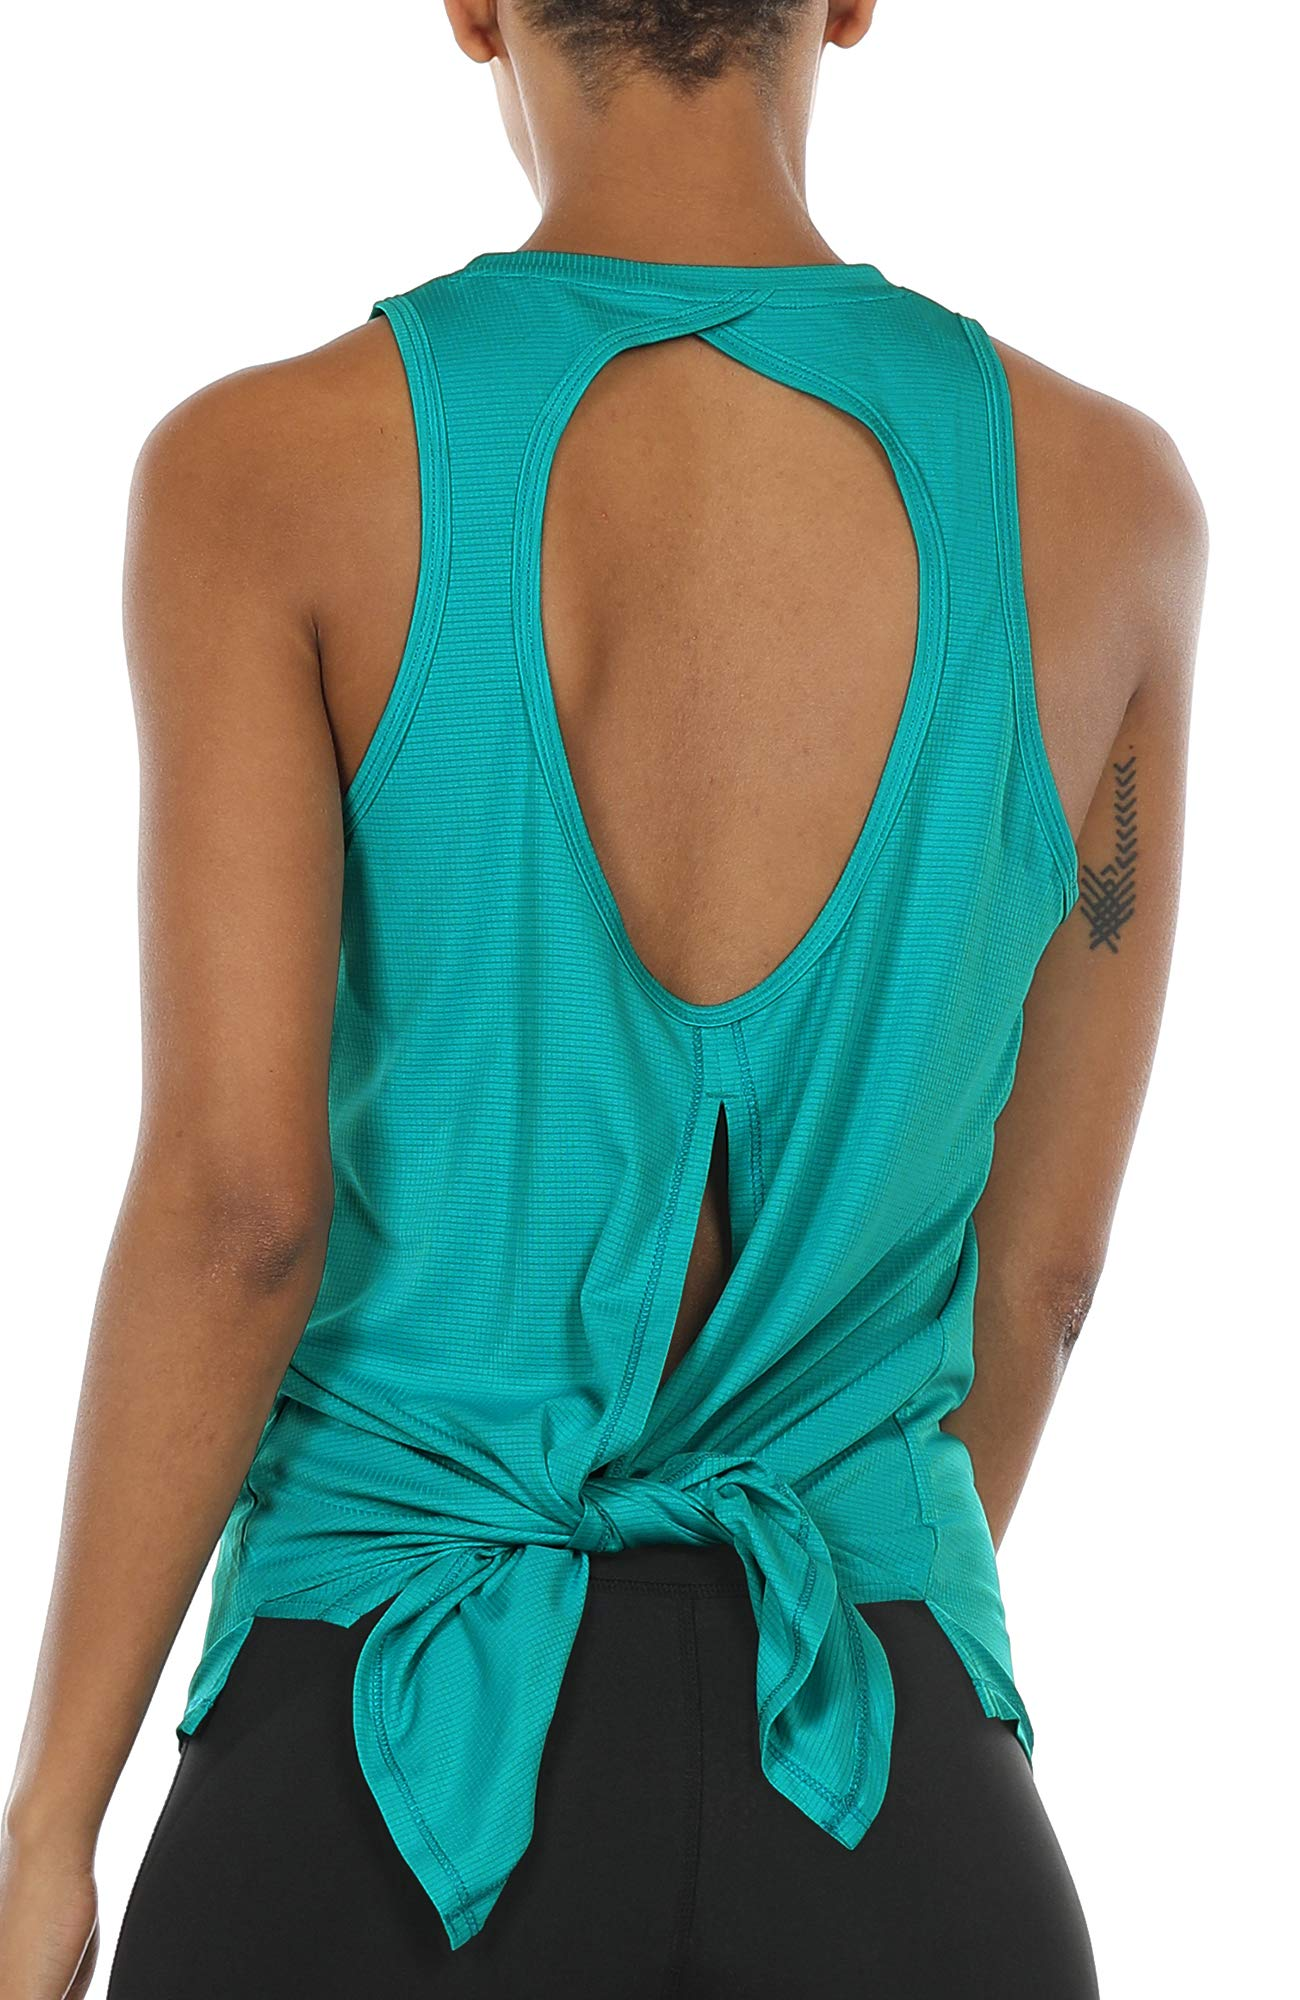 d344c48743 icyzone Open Back Workout Top Shirts - Activewear Exercise Yoga Tops for  Women (L, Peacock Green)